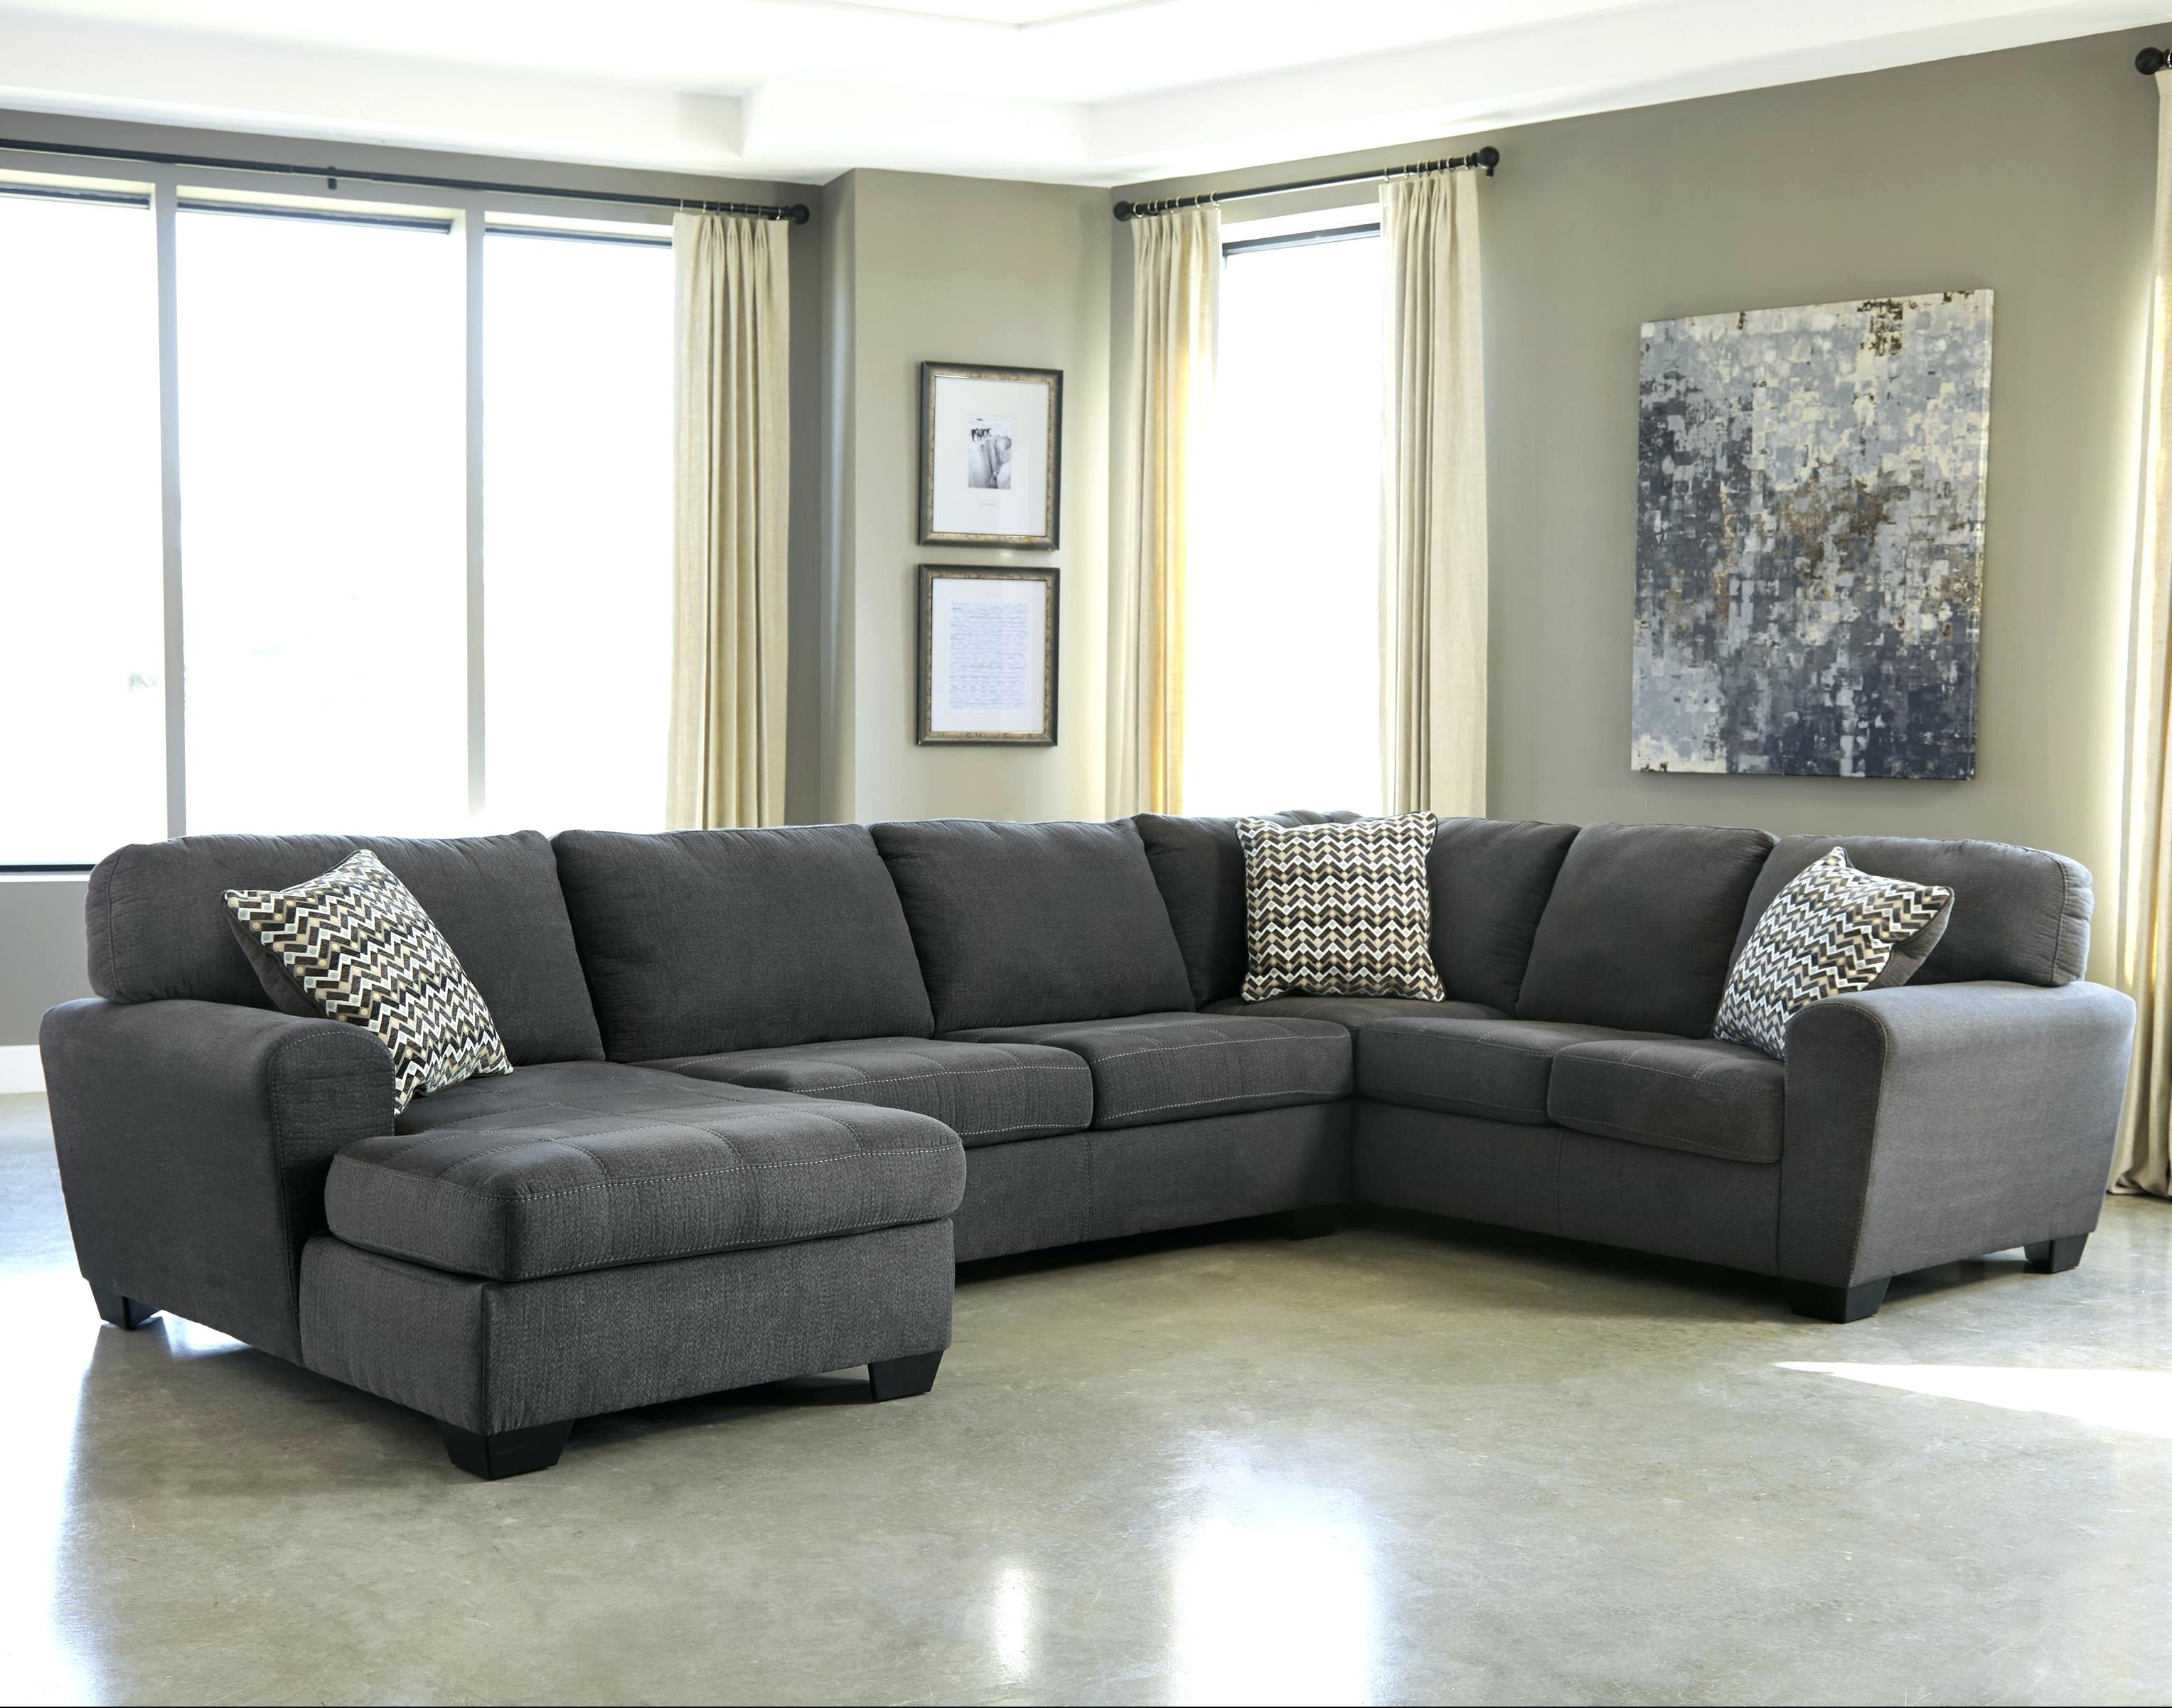 3 Piece Sectional Haven Blue Steel 3 Piece Sectional 3 Pc Reclining For Haven Blue Steel 3 Piece Sectionals (Photo 2 of 30)